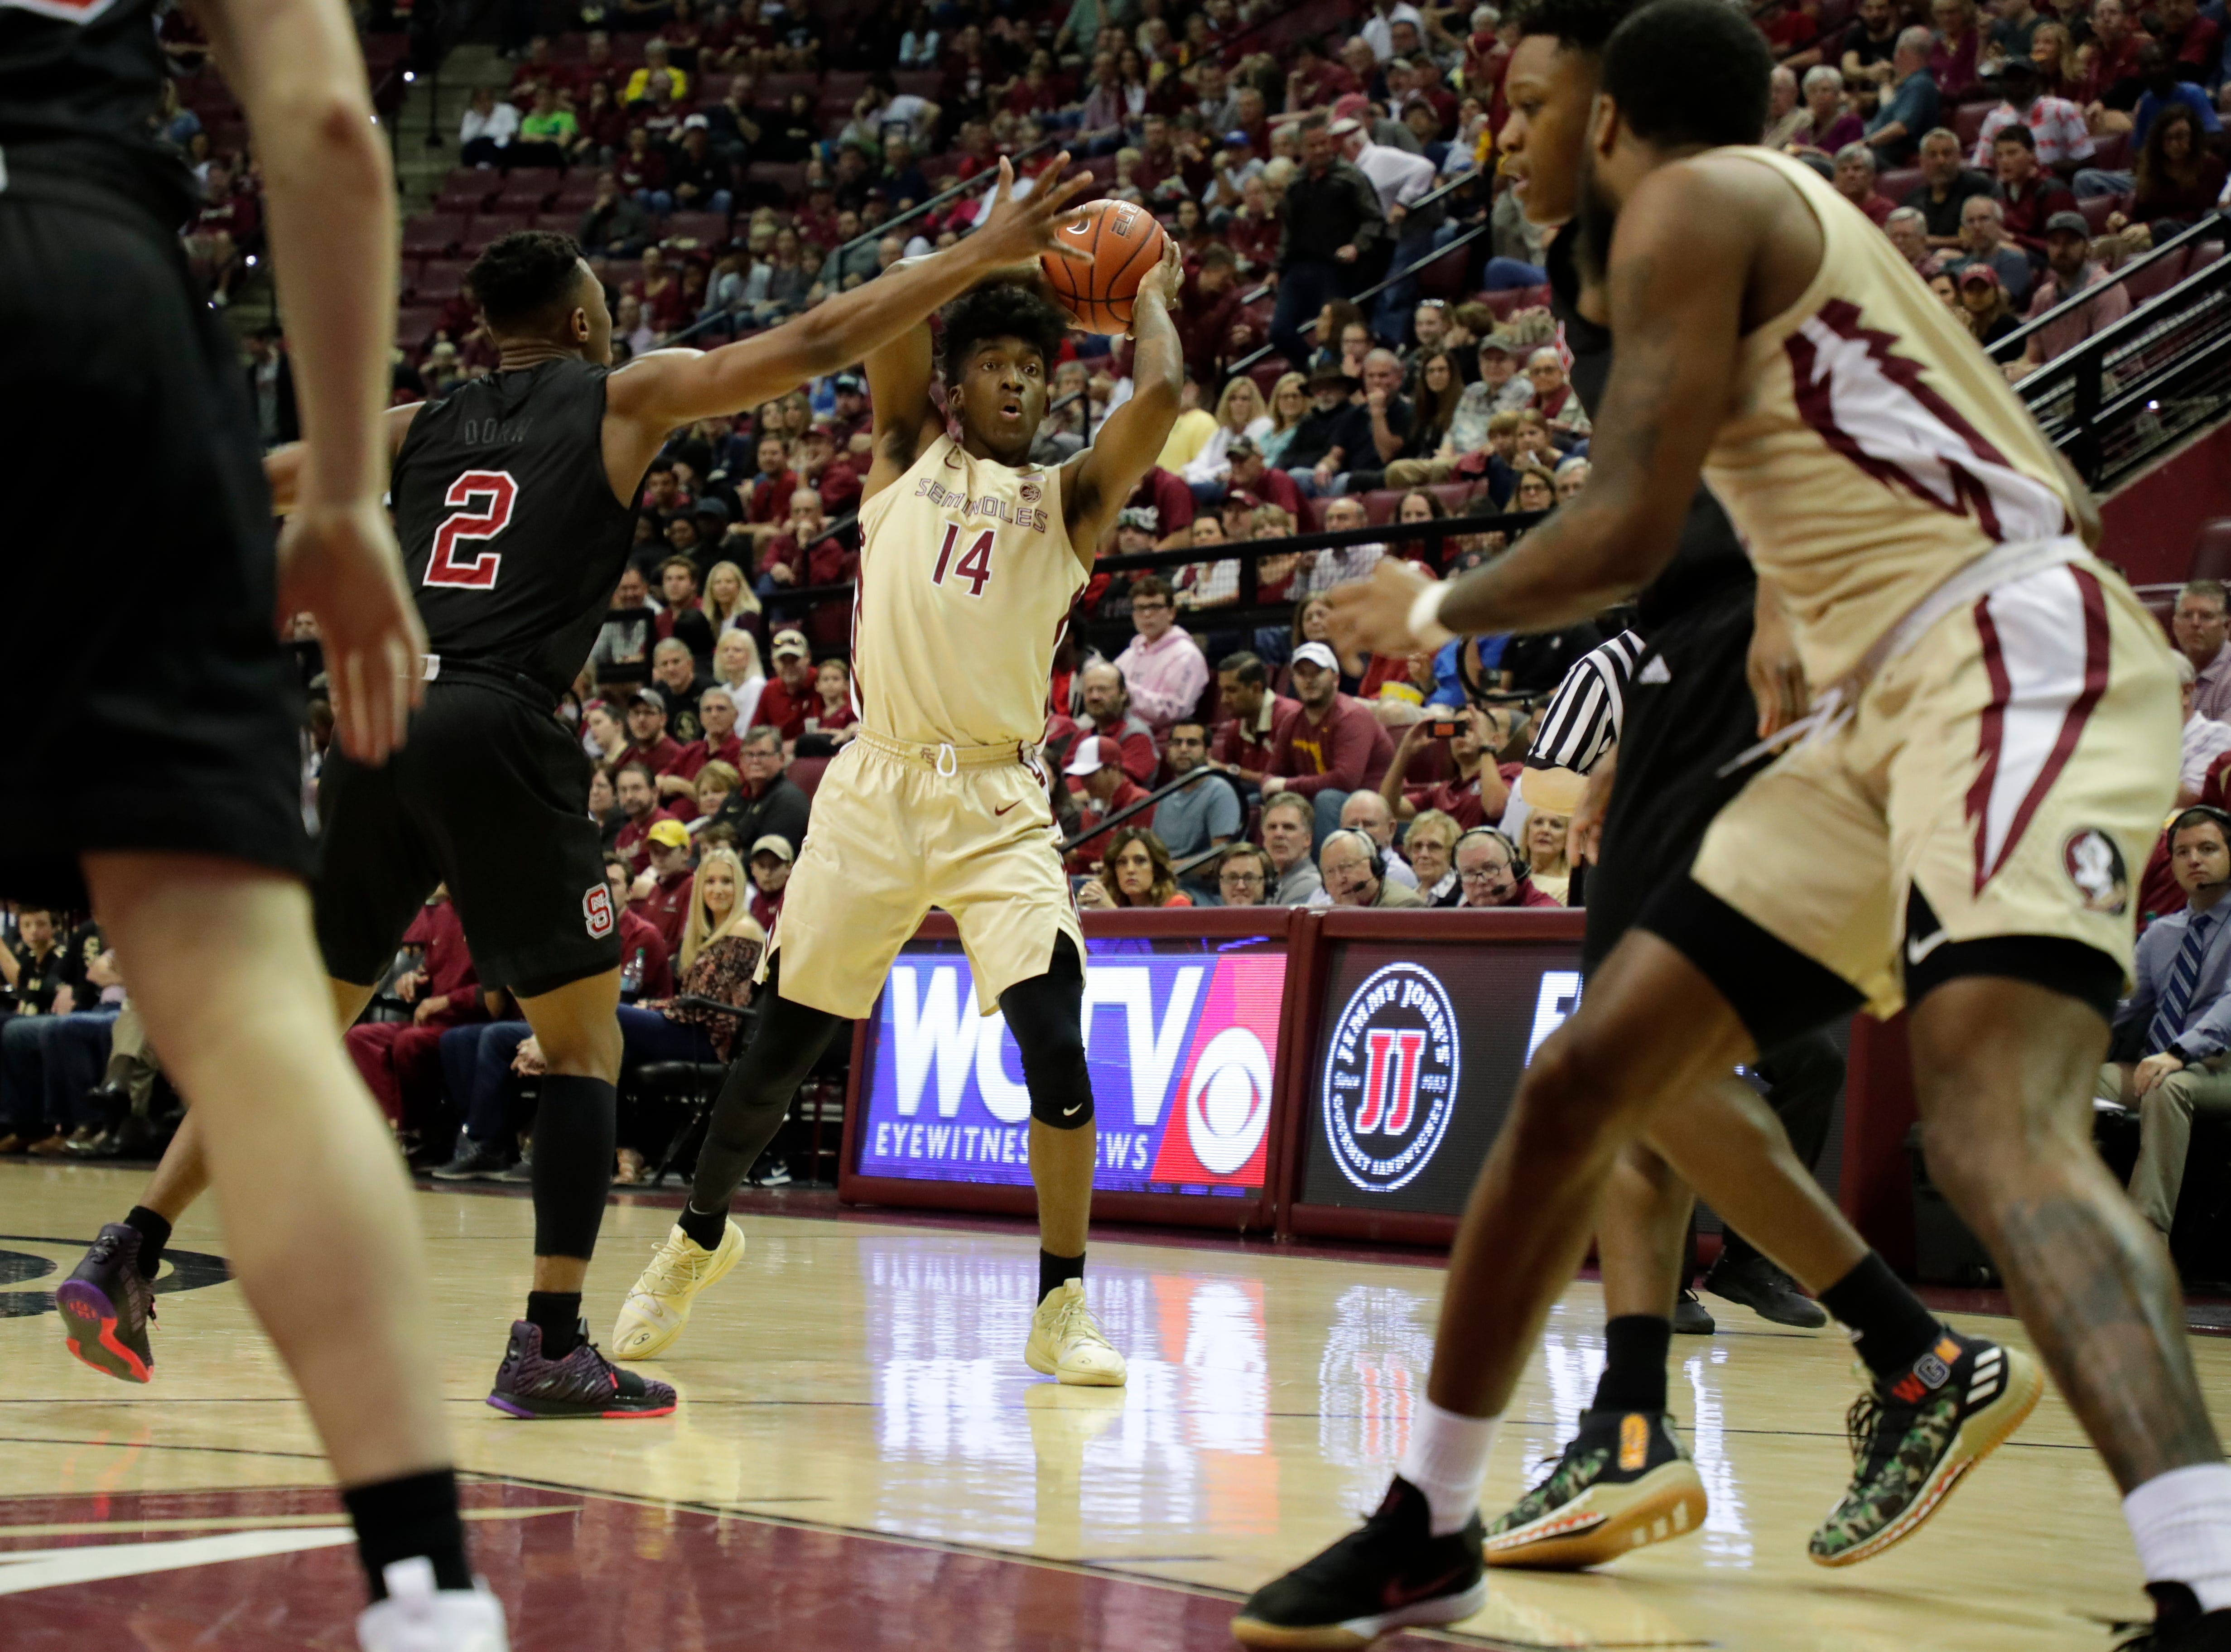 Florida State Seminoles guard Terance Mann (14) looks to pass. The Florida State Seminoles host the NC State Wolfpack at the Tucker Civic Center Saturday, March 2, 2019.